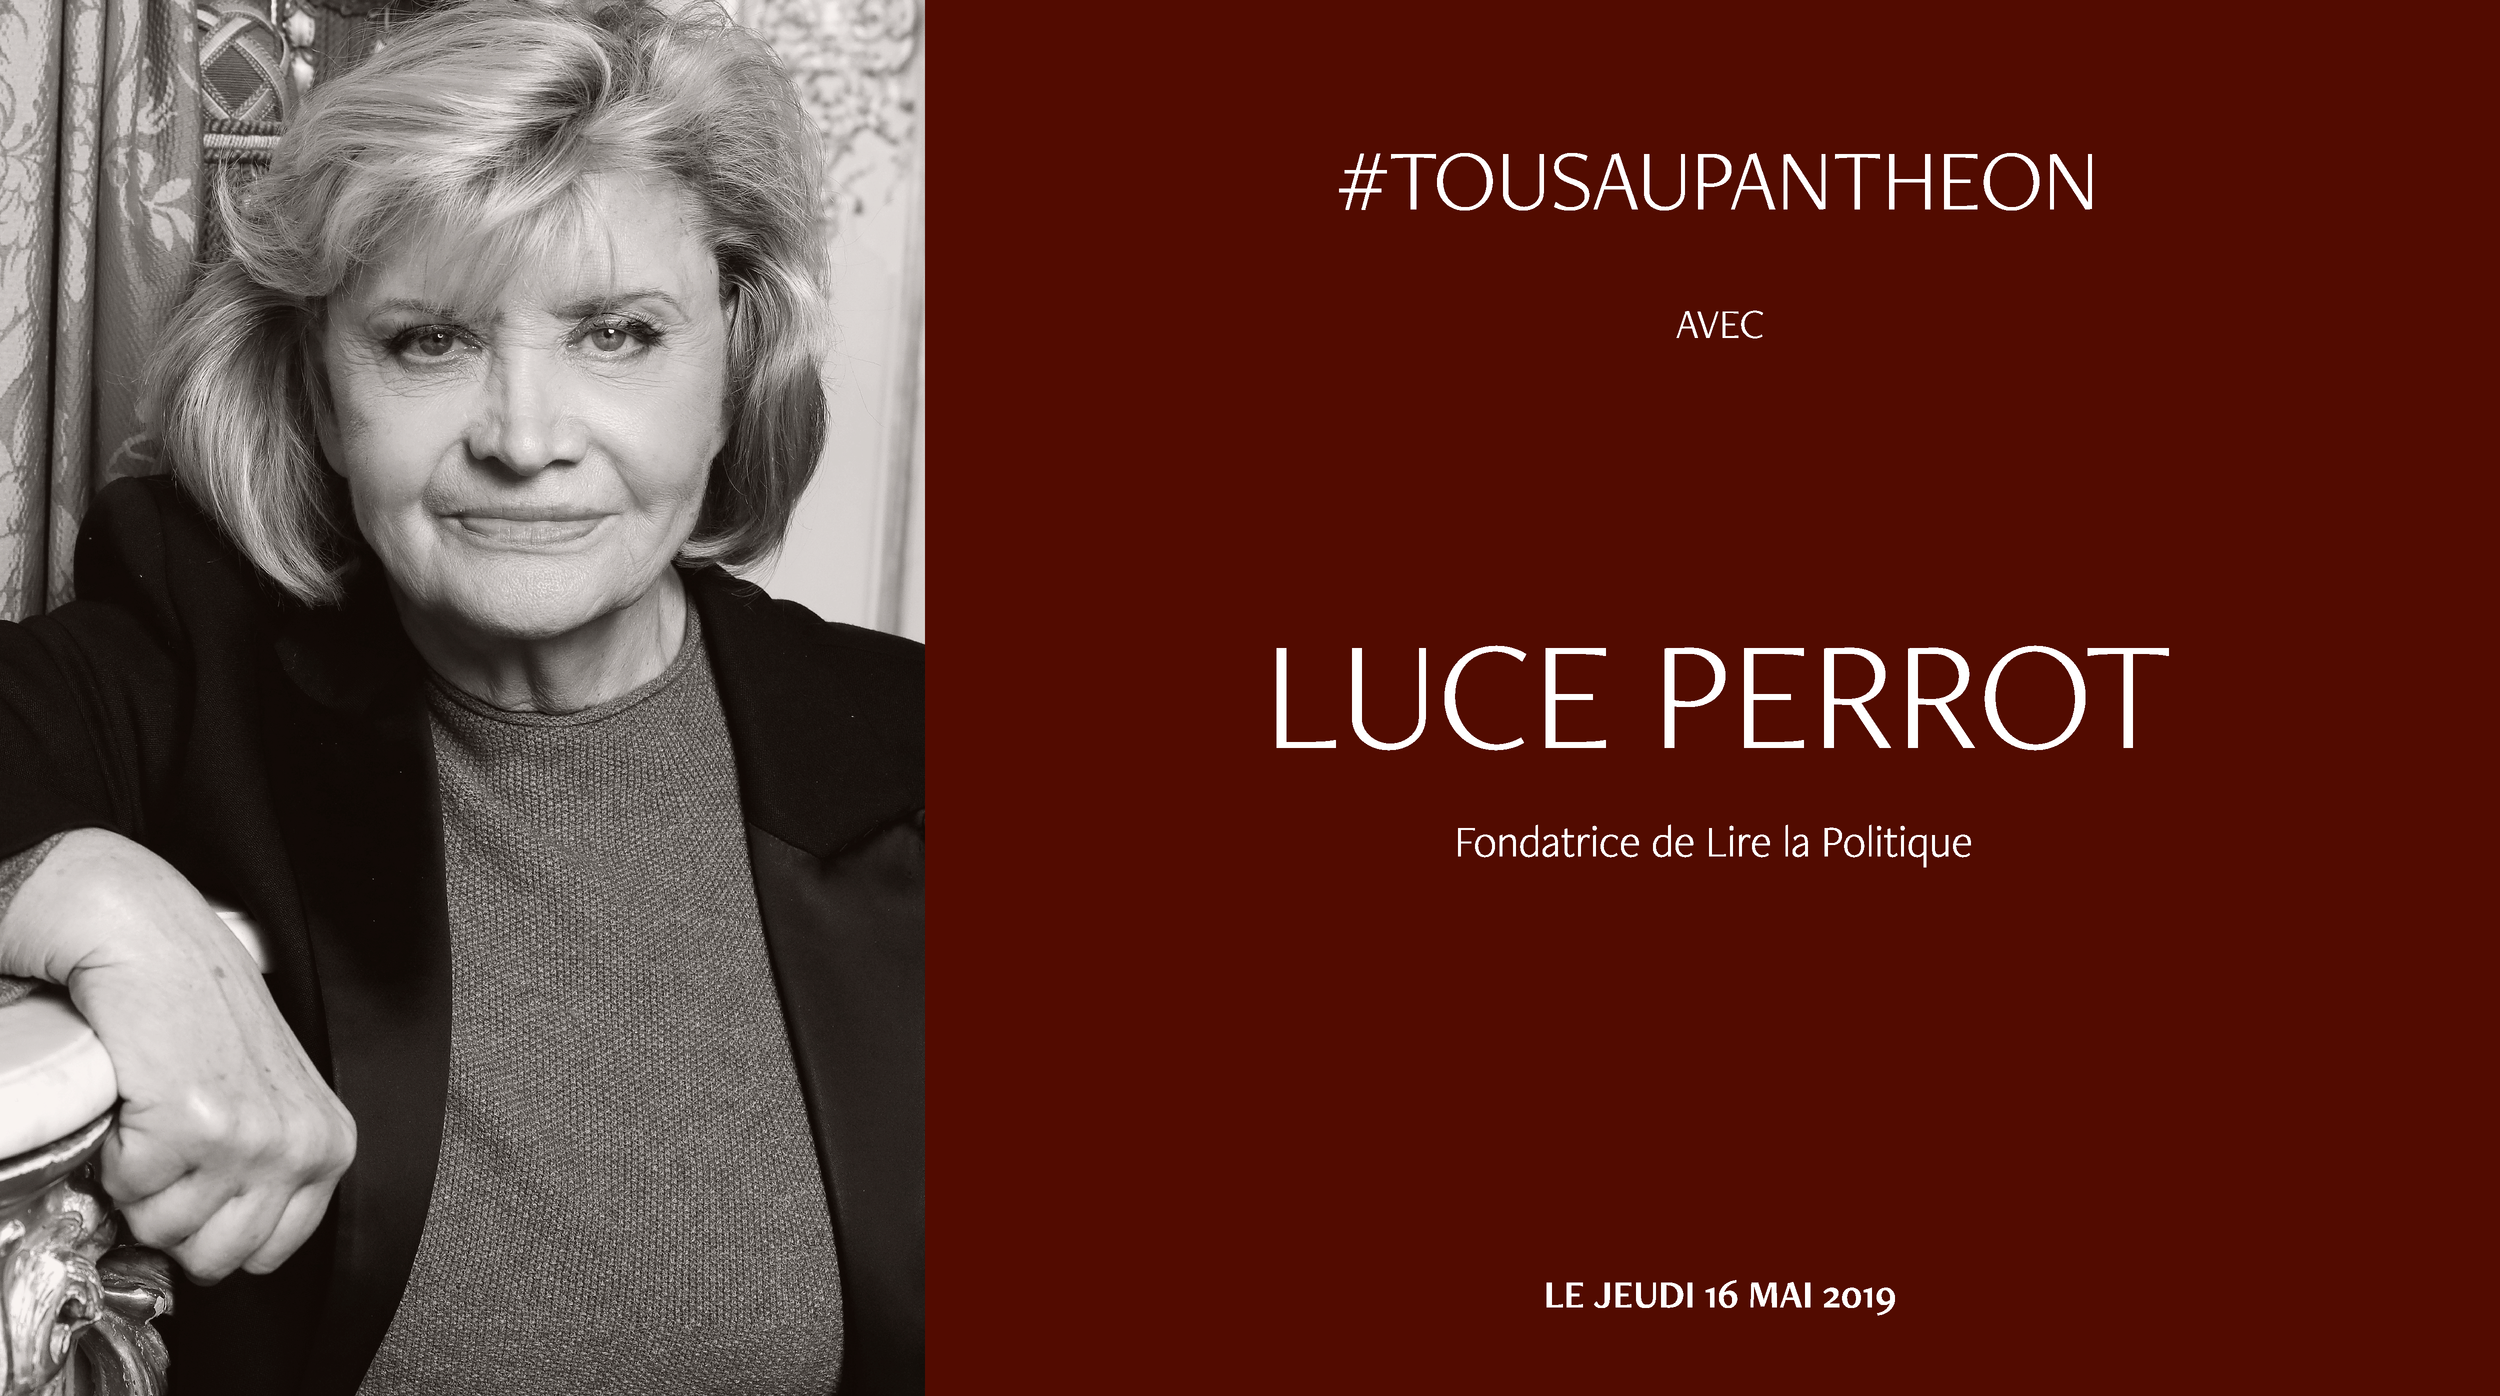 LUCE PERROT (1).png